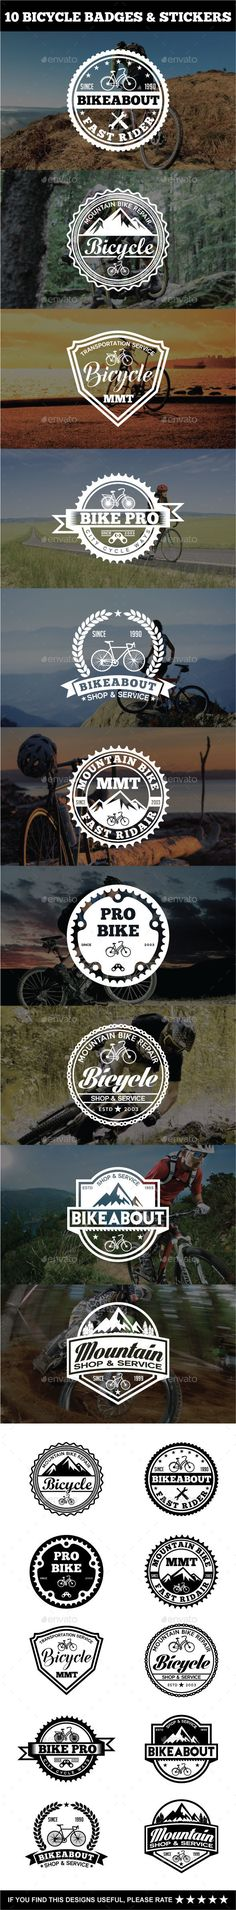 Sport Bicycle Badges & Stickers Template Vector EPS, AI #design Download: http://graphicriver.net/item/sport-bicycle-badges-stickers/14407335?ref=ksioks